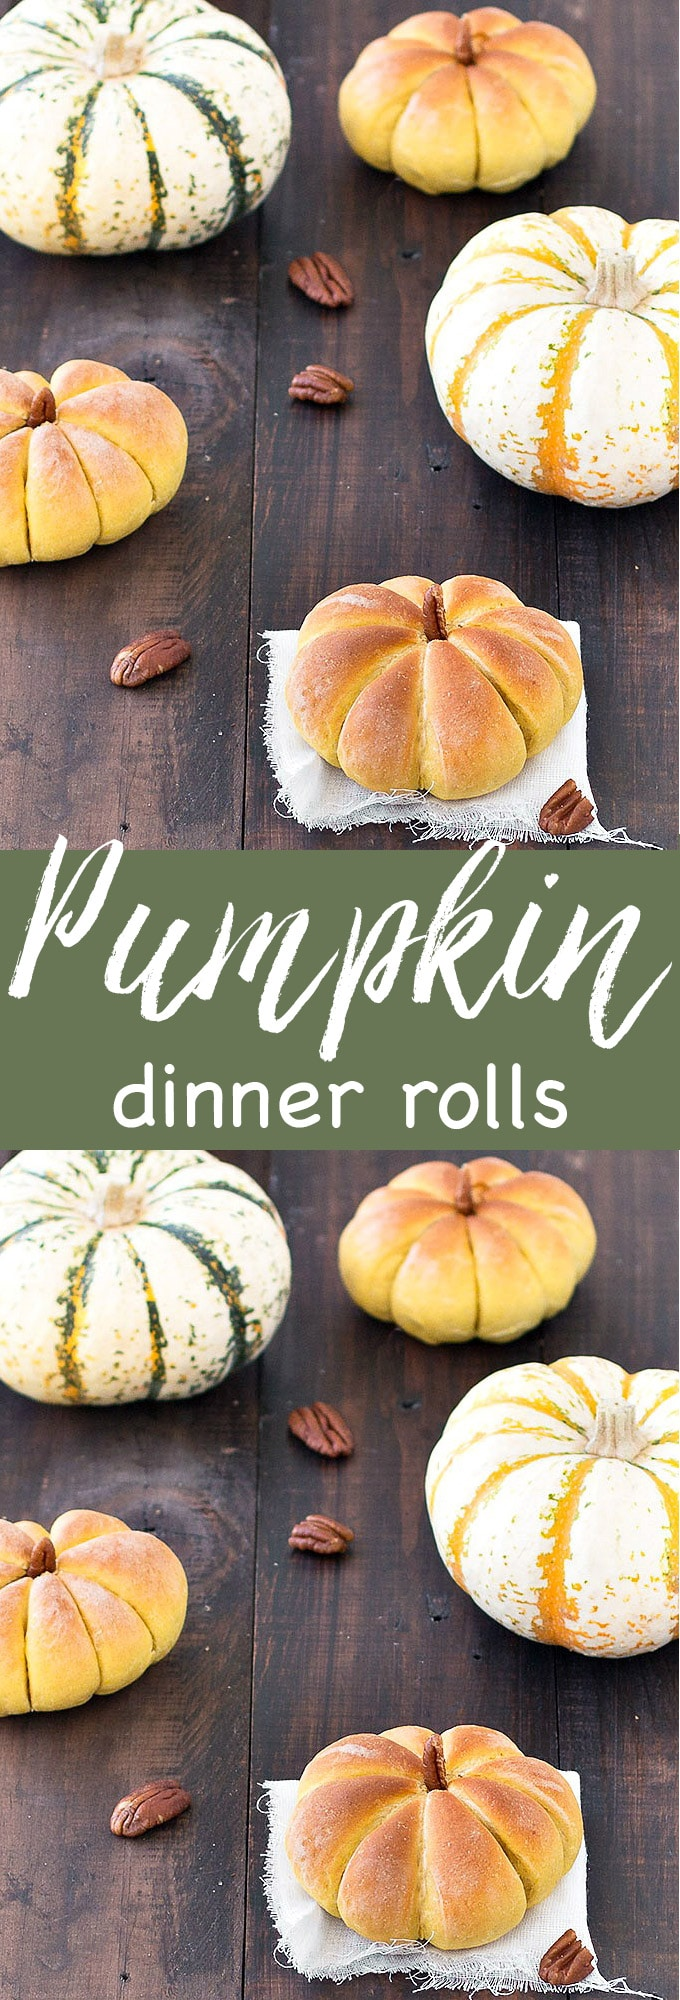 These pumpkin dinner rolls will be a hit at your Thanksgiving or Halloween dinner table with their adorable pumpkin shapes. This fall recipe is vegan and vegetarian. #fall #autumn #baking #dinnerrolls #bread #rolls #pumpkin #thanksgiving #halloween